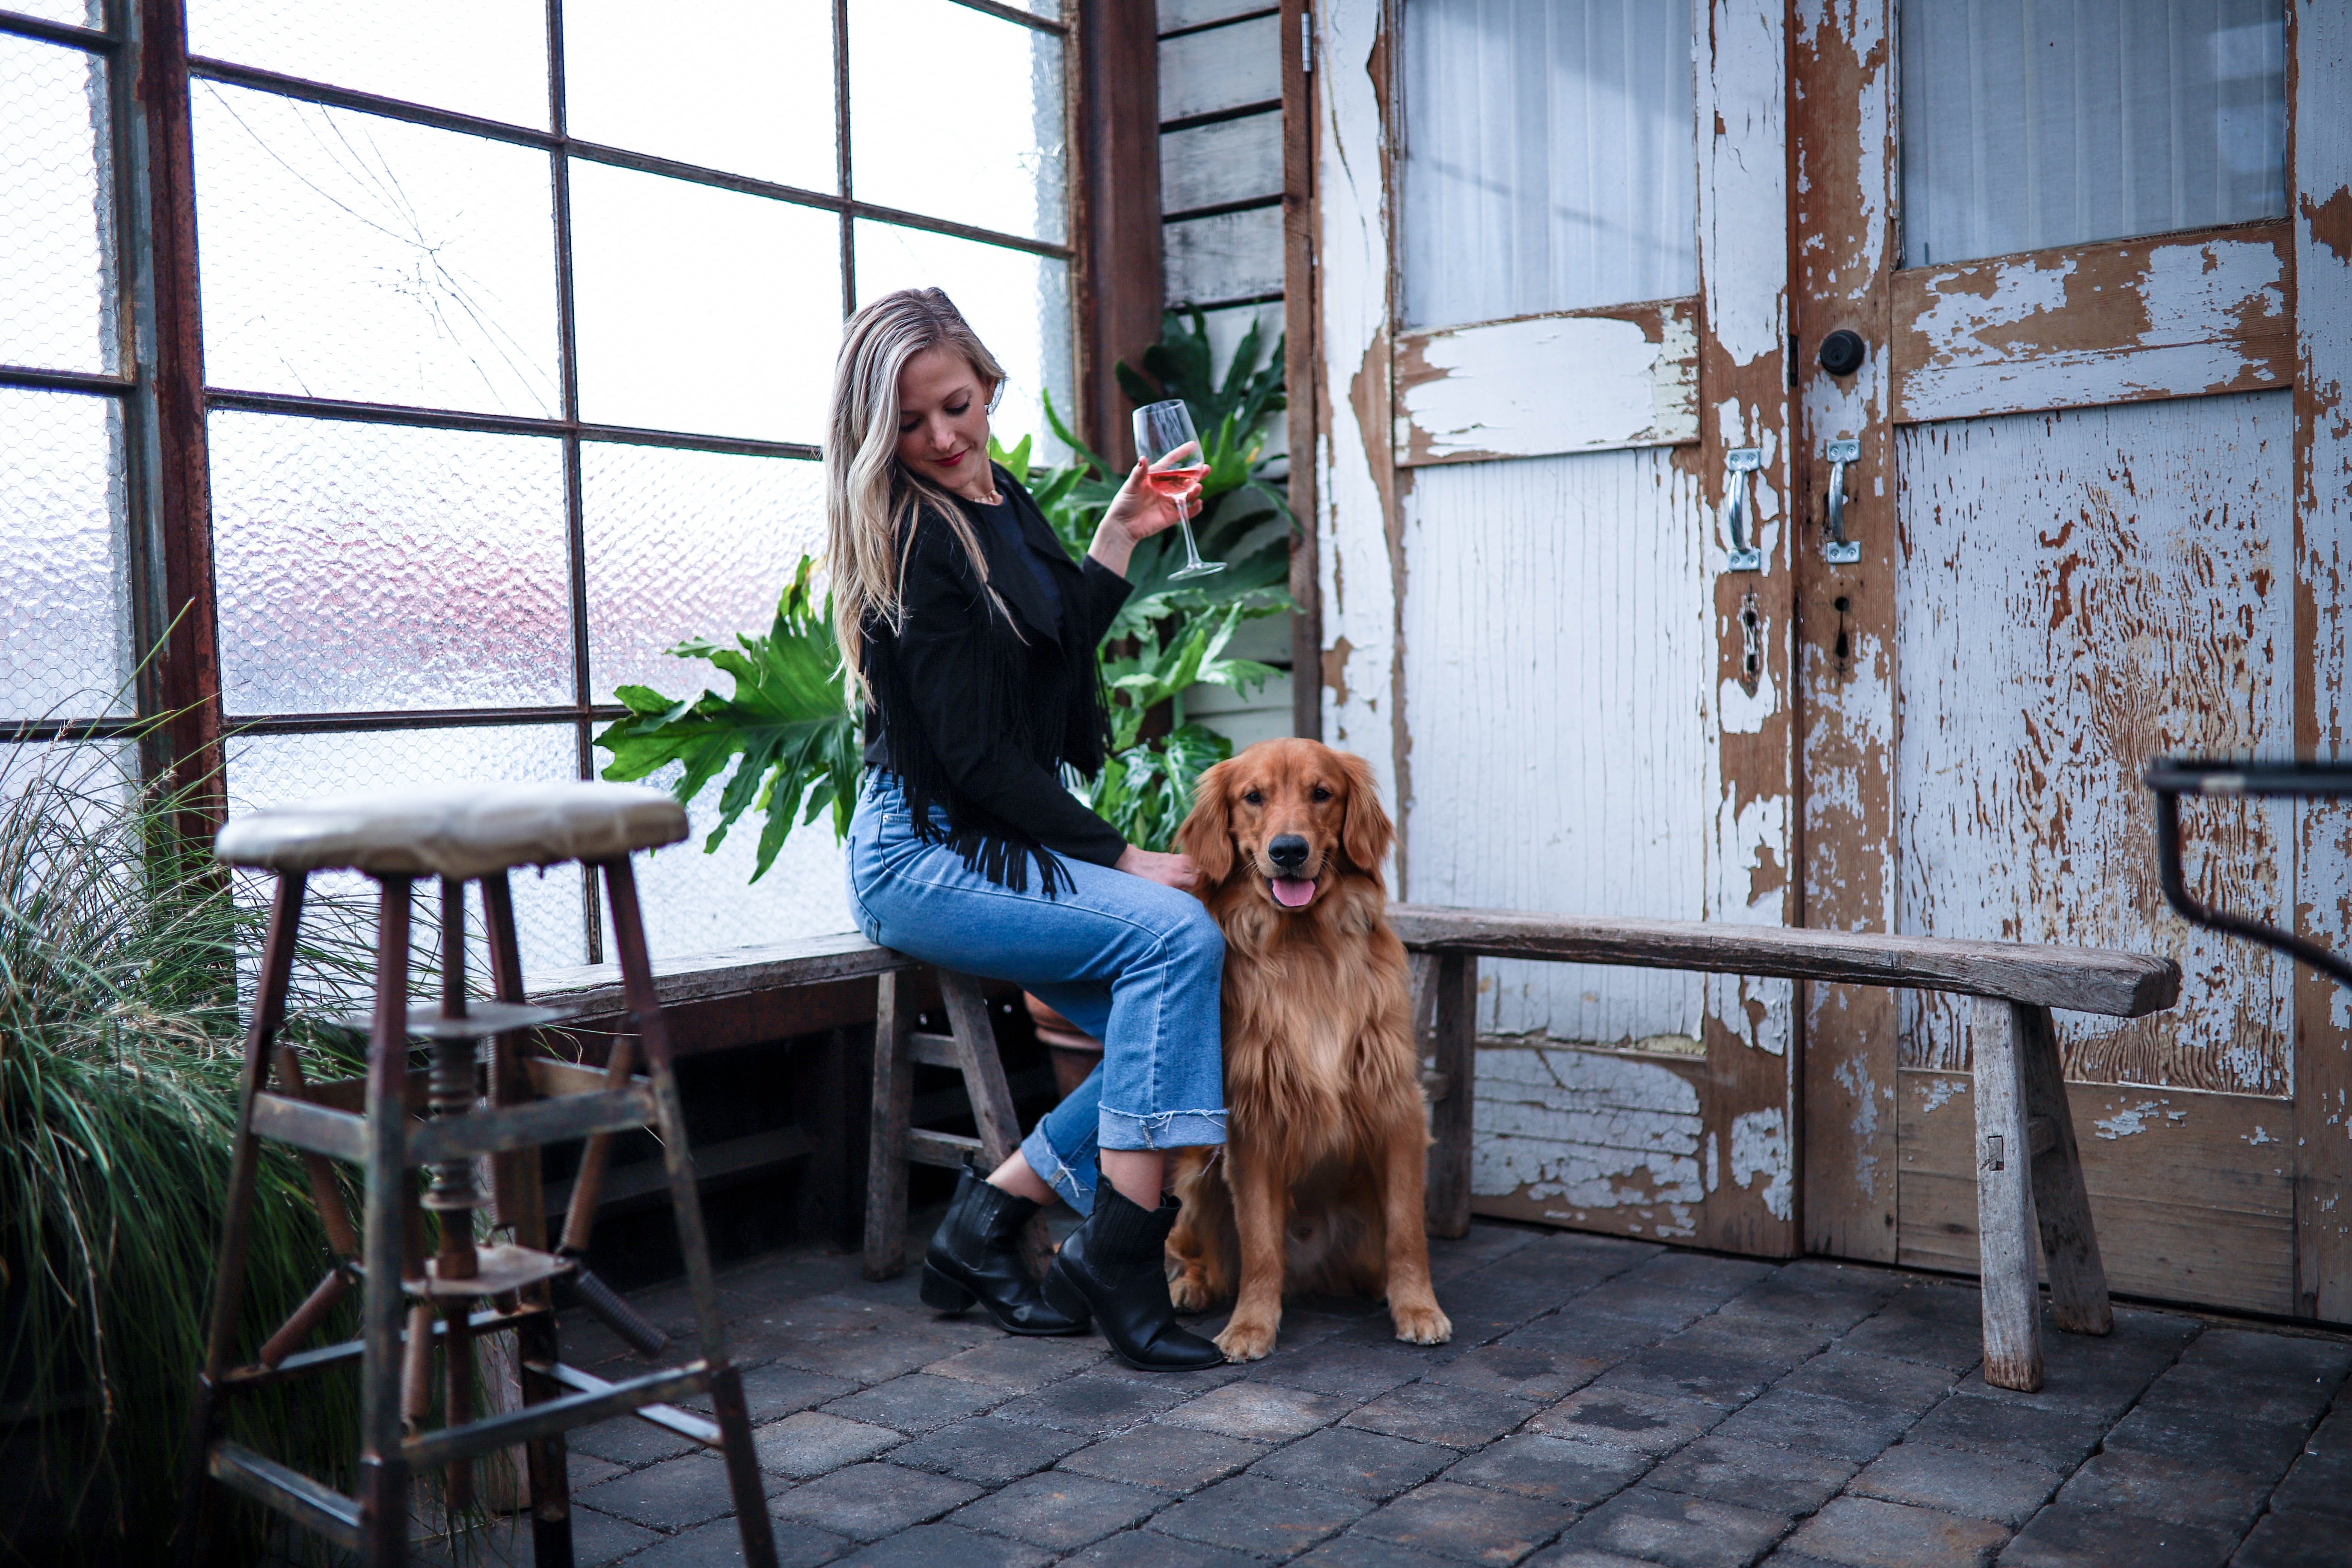 daily-wag-5-dog-friendly-bars-in-columbus-your-pup-should-visit-hero-image